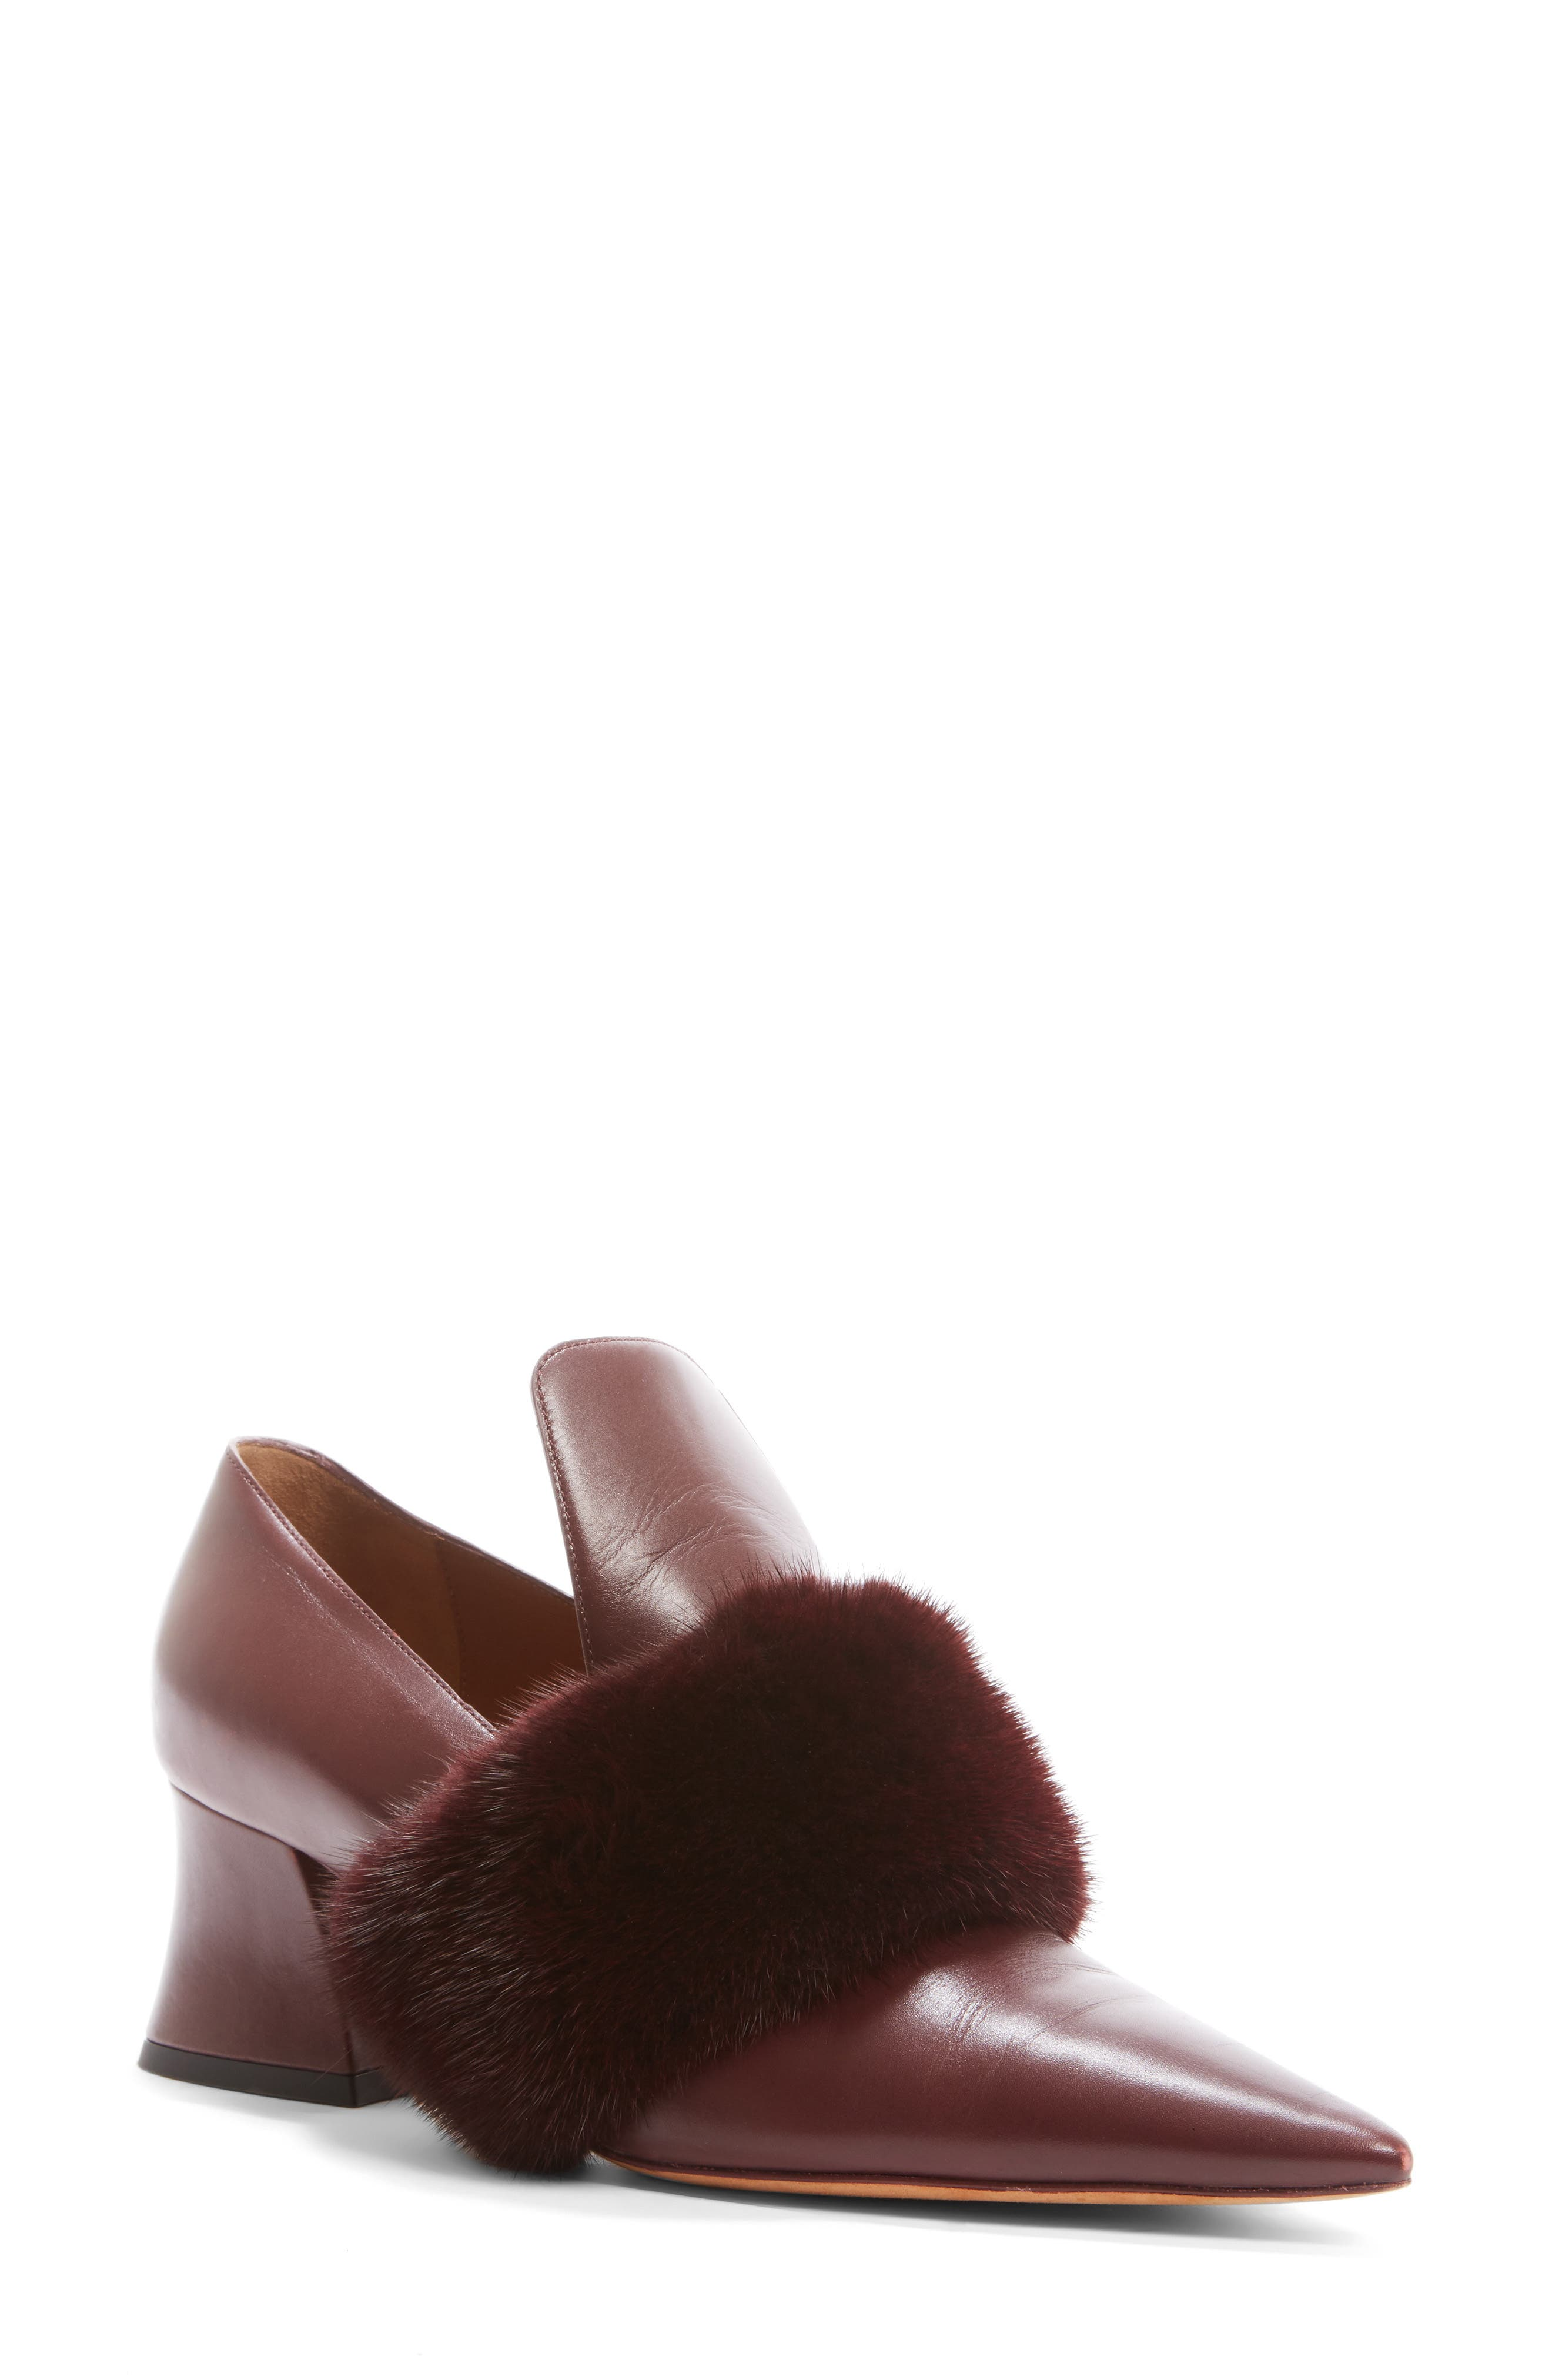 Alternate Image 1 Selected - Givenchy Patricia Pump with Genuine Mink Fur Trim (Women)